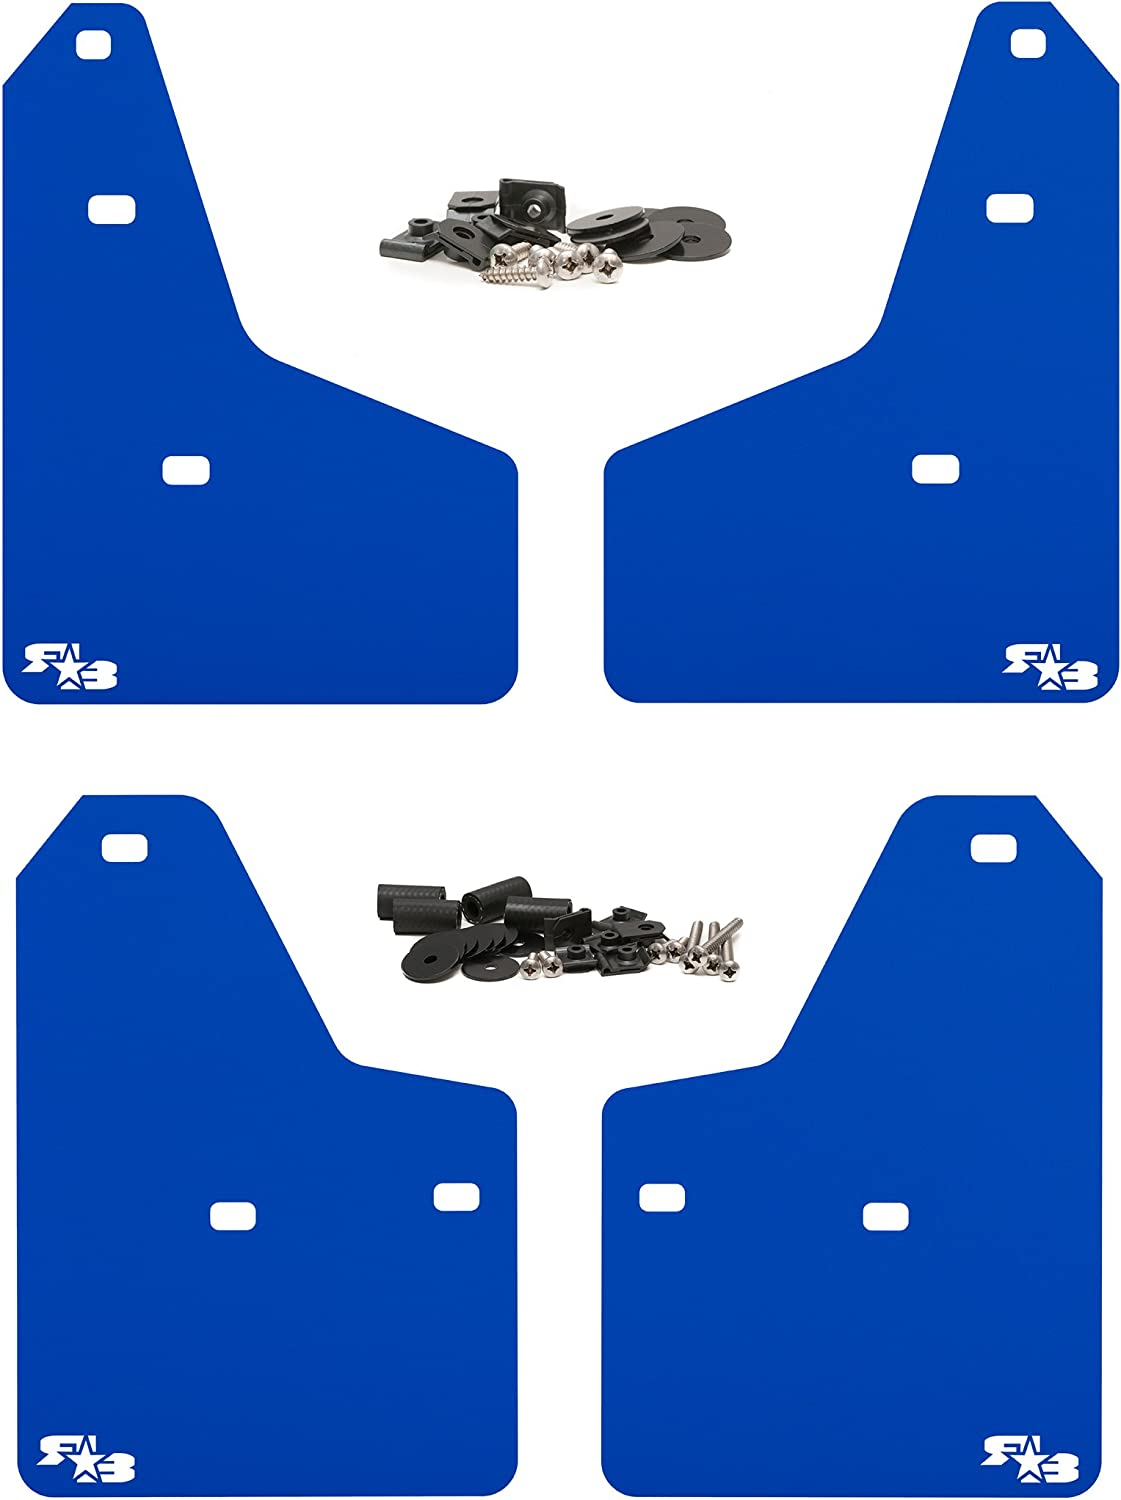 Black with White Logo, Originalz Set of 4 Includes All Hardware and Detailed Instructions RokBlokz Mud Flaps for 2012+ Ford Focus Fits All MK3 Models Multiple Colors Available